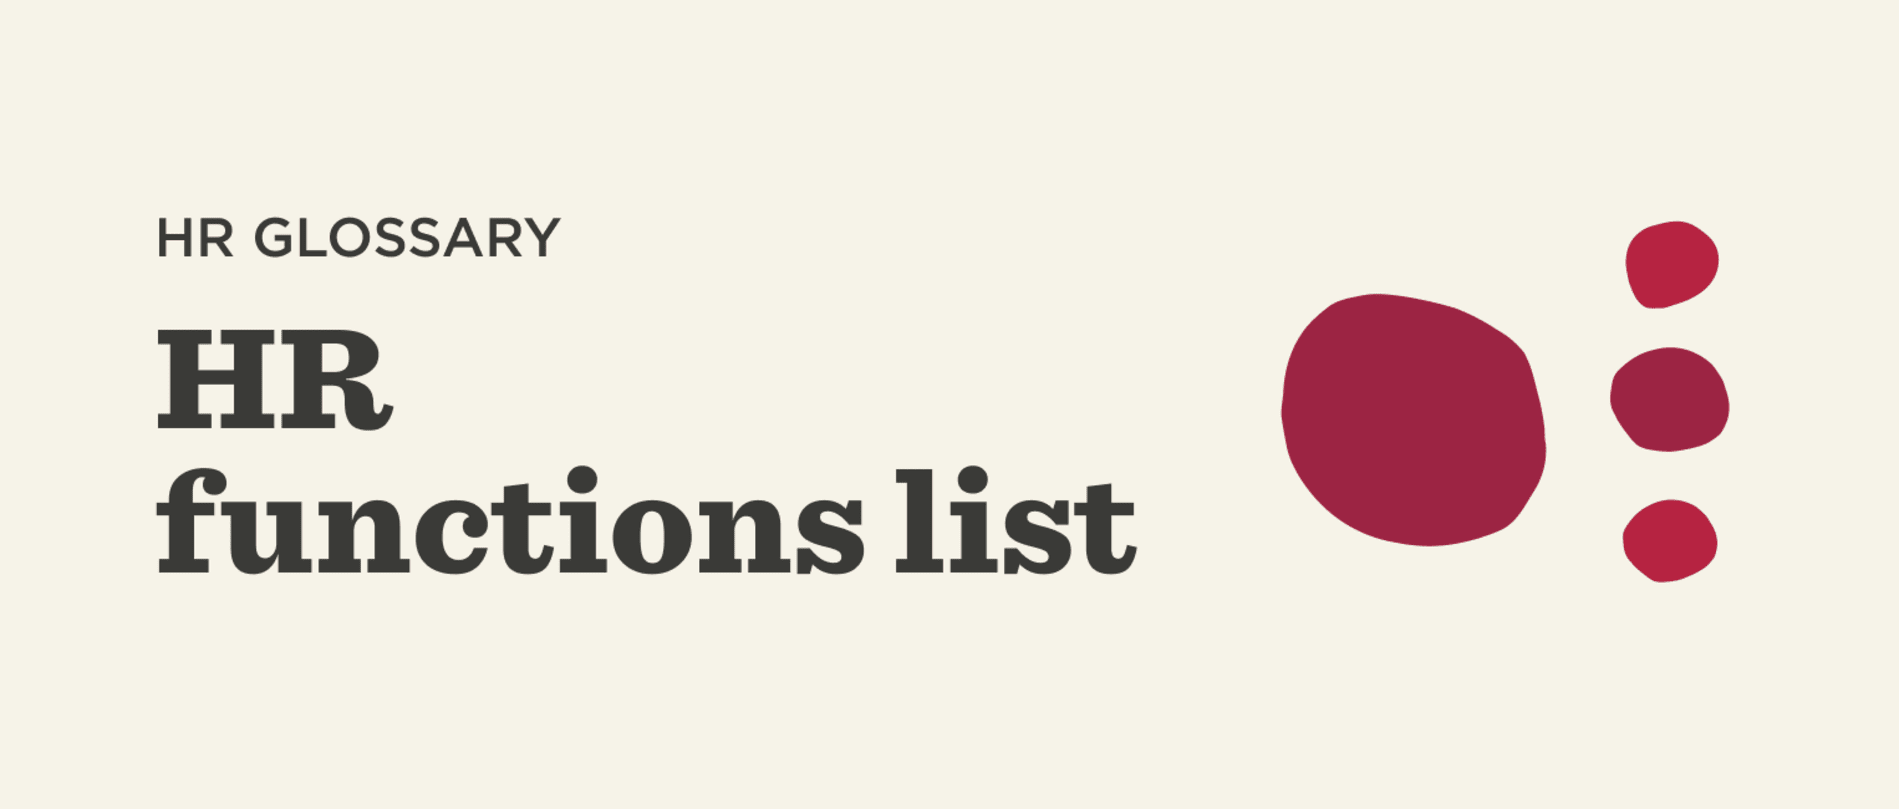 HR-functions-list-Glossary-banner